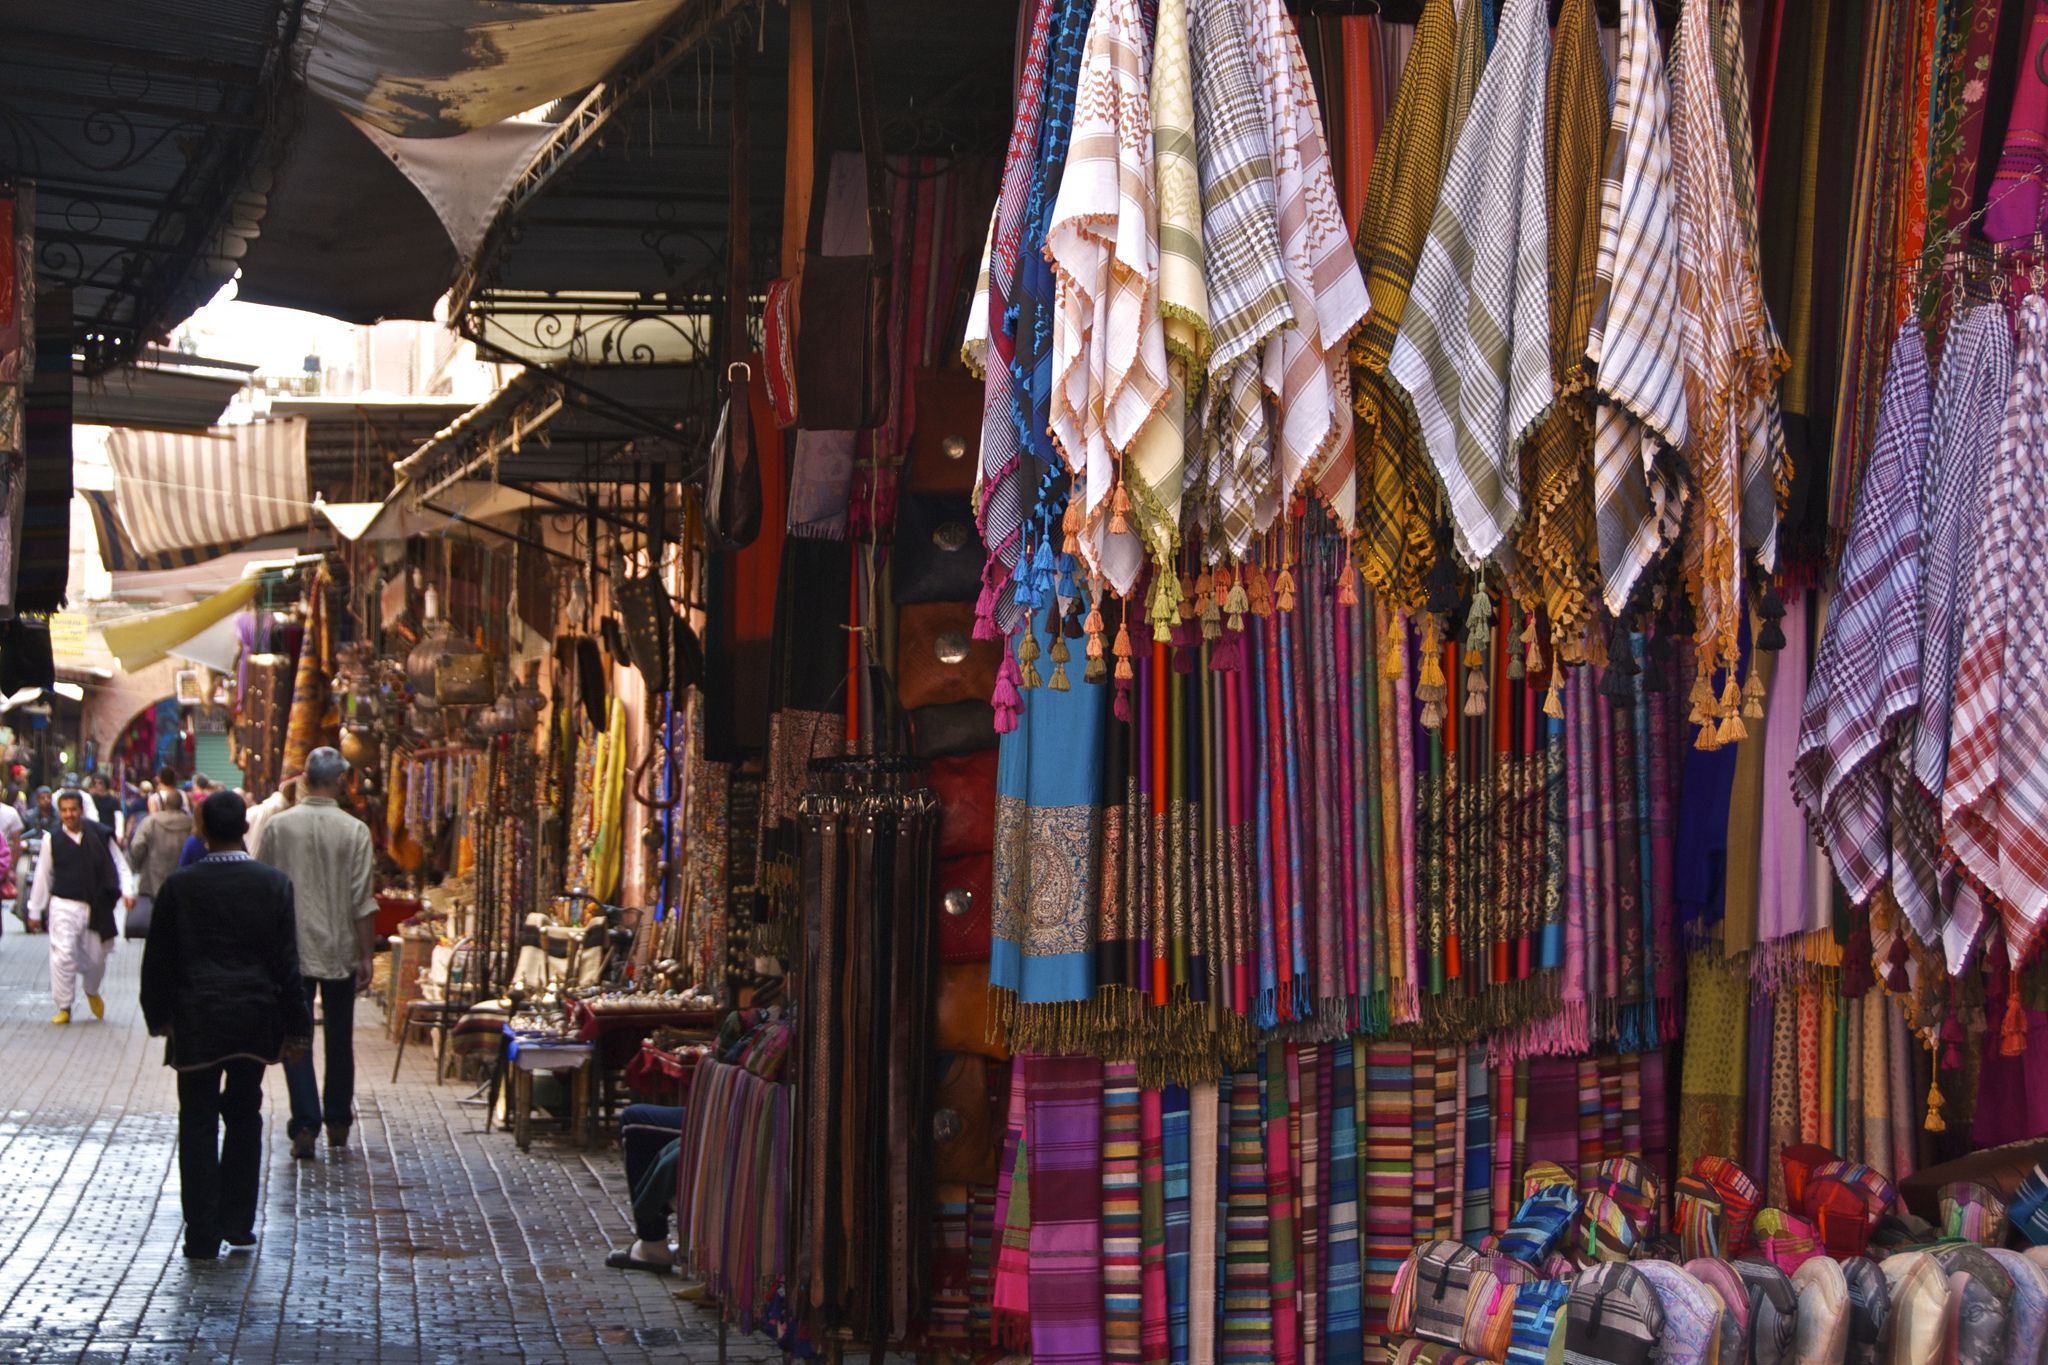 https://flic.kr/p/e7xgFz | Garment Stall, Marrakech Souk | This is typical of the many souks to be found in the Medina section of Marrakech, Morocco